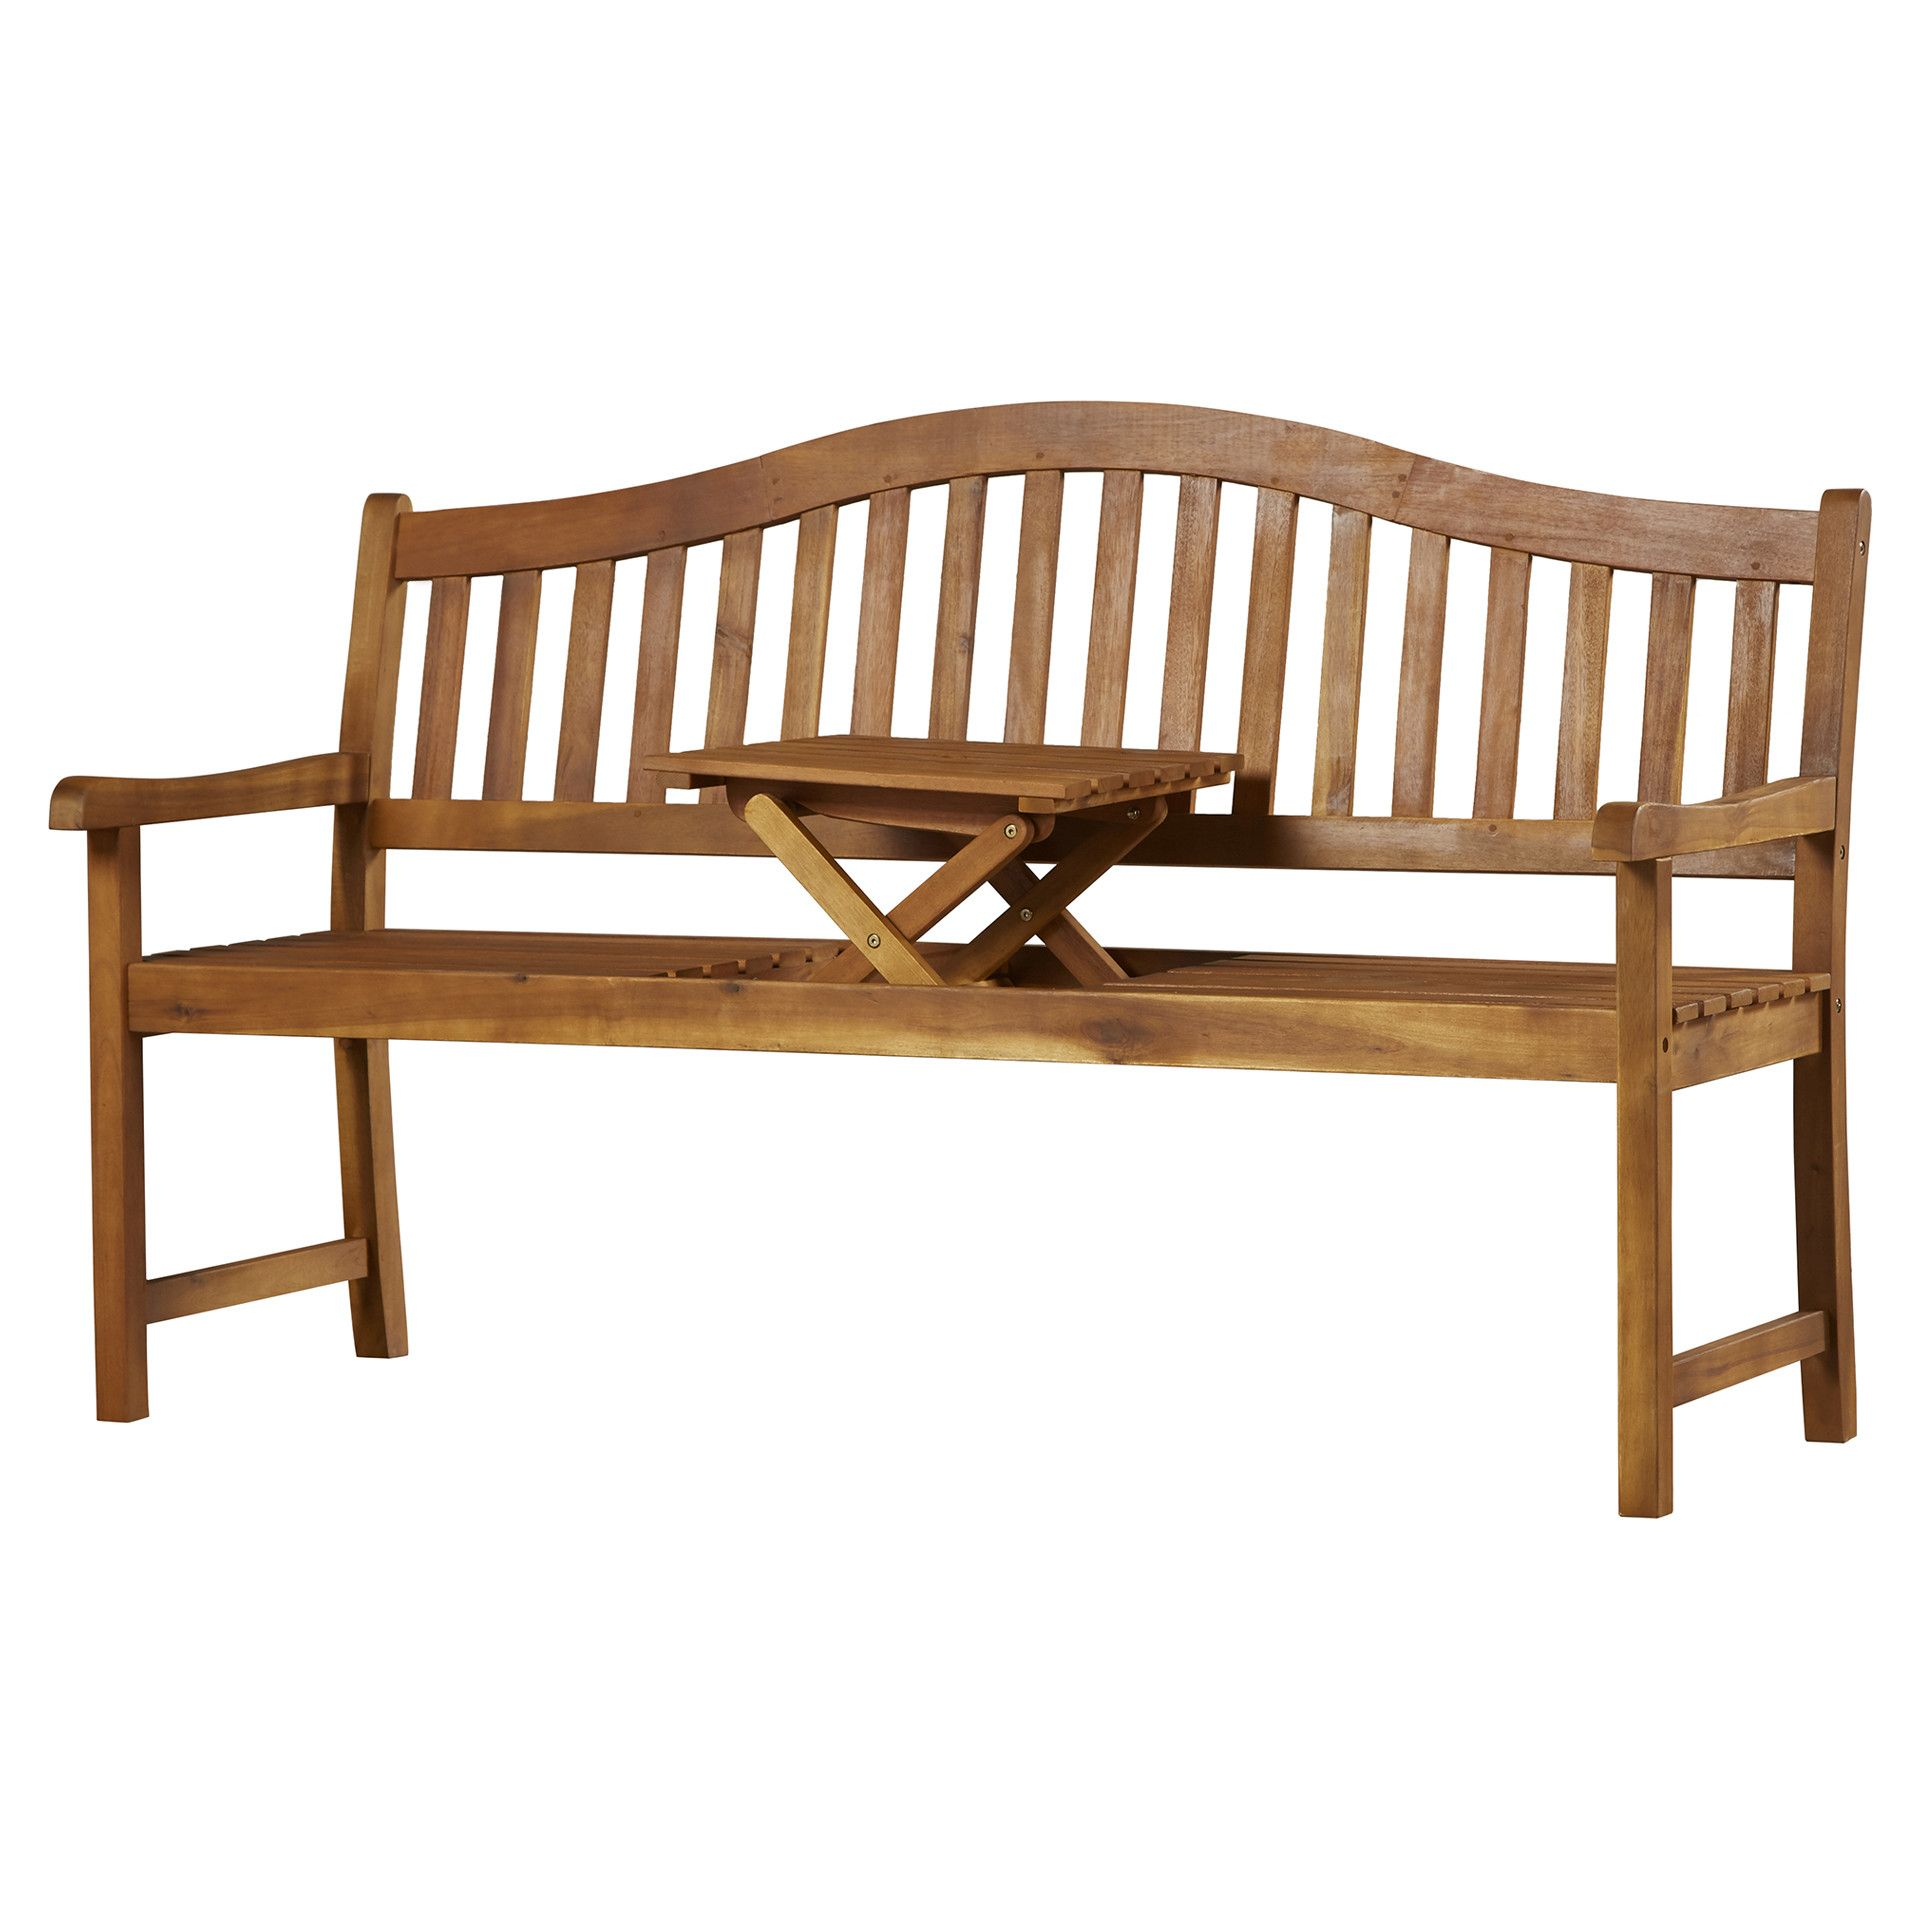 Volusia Wooden Garden Bench In 2020 | Wooden Garden Benches With Wallie Teak Garden Benches (View 22 of 25)